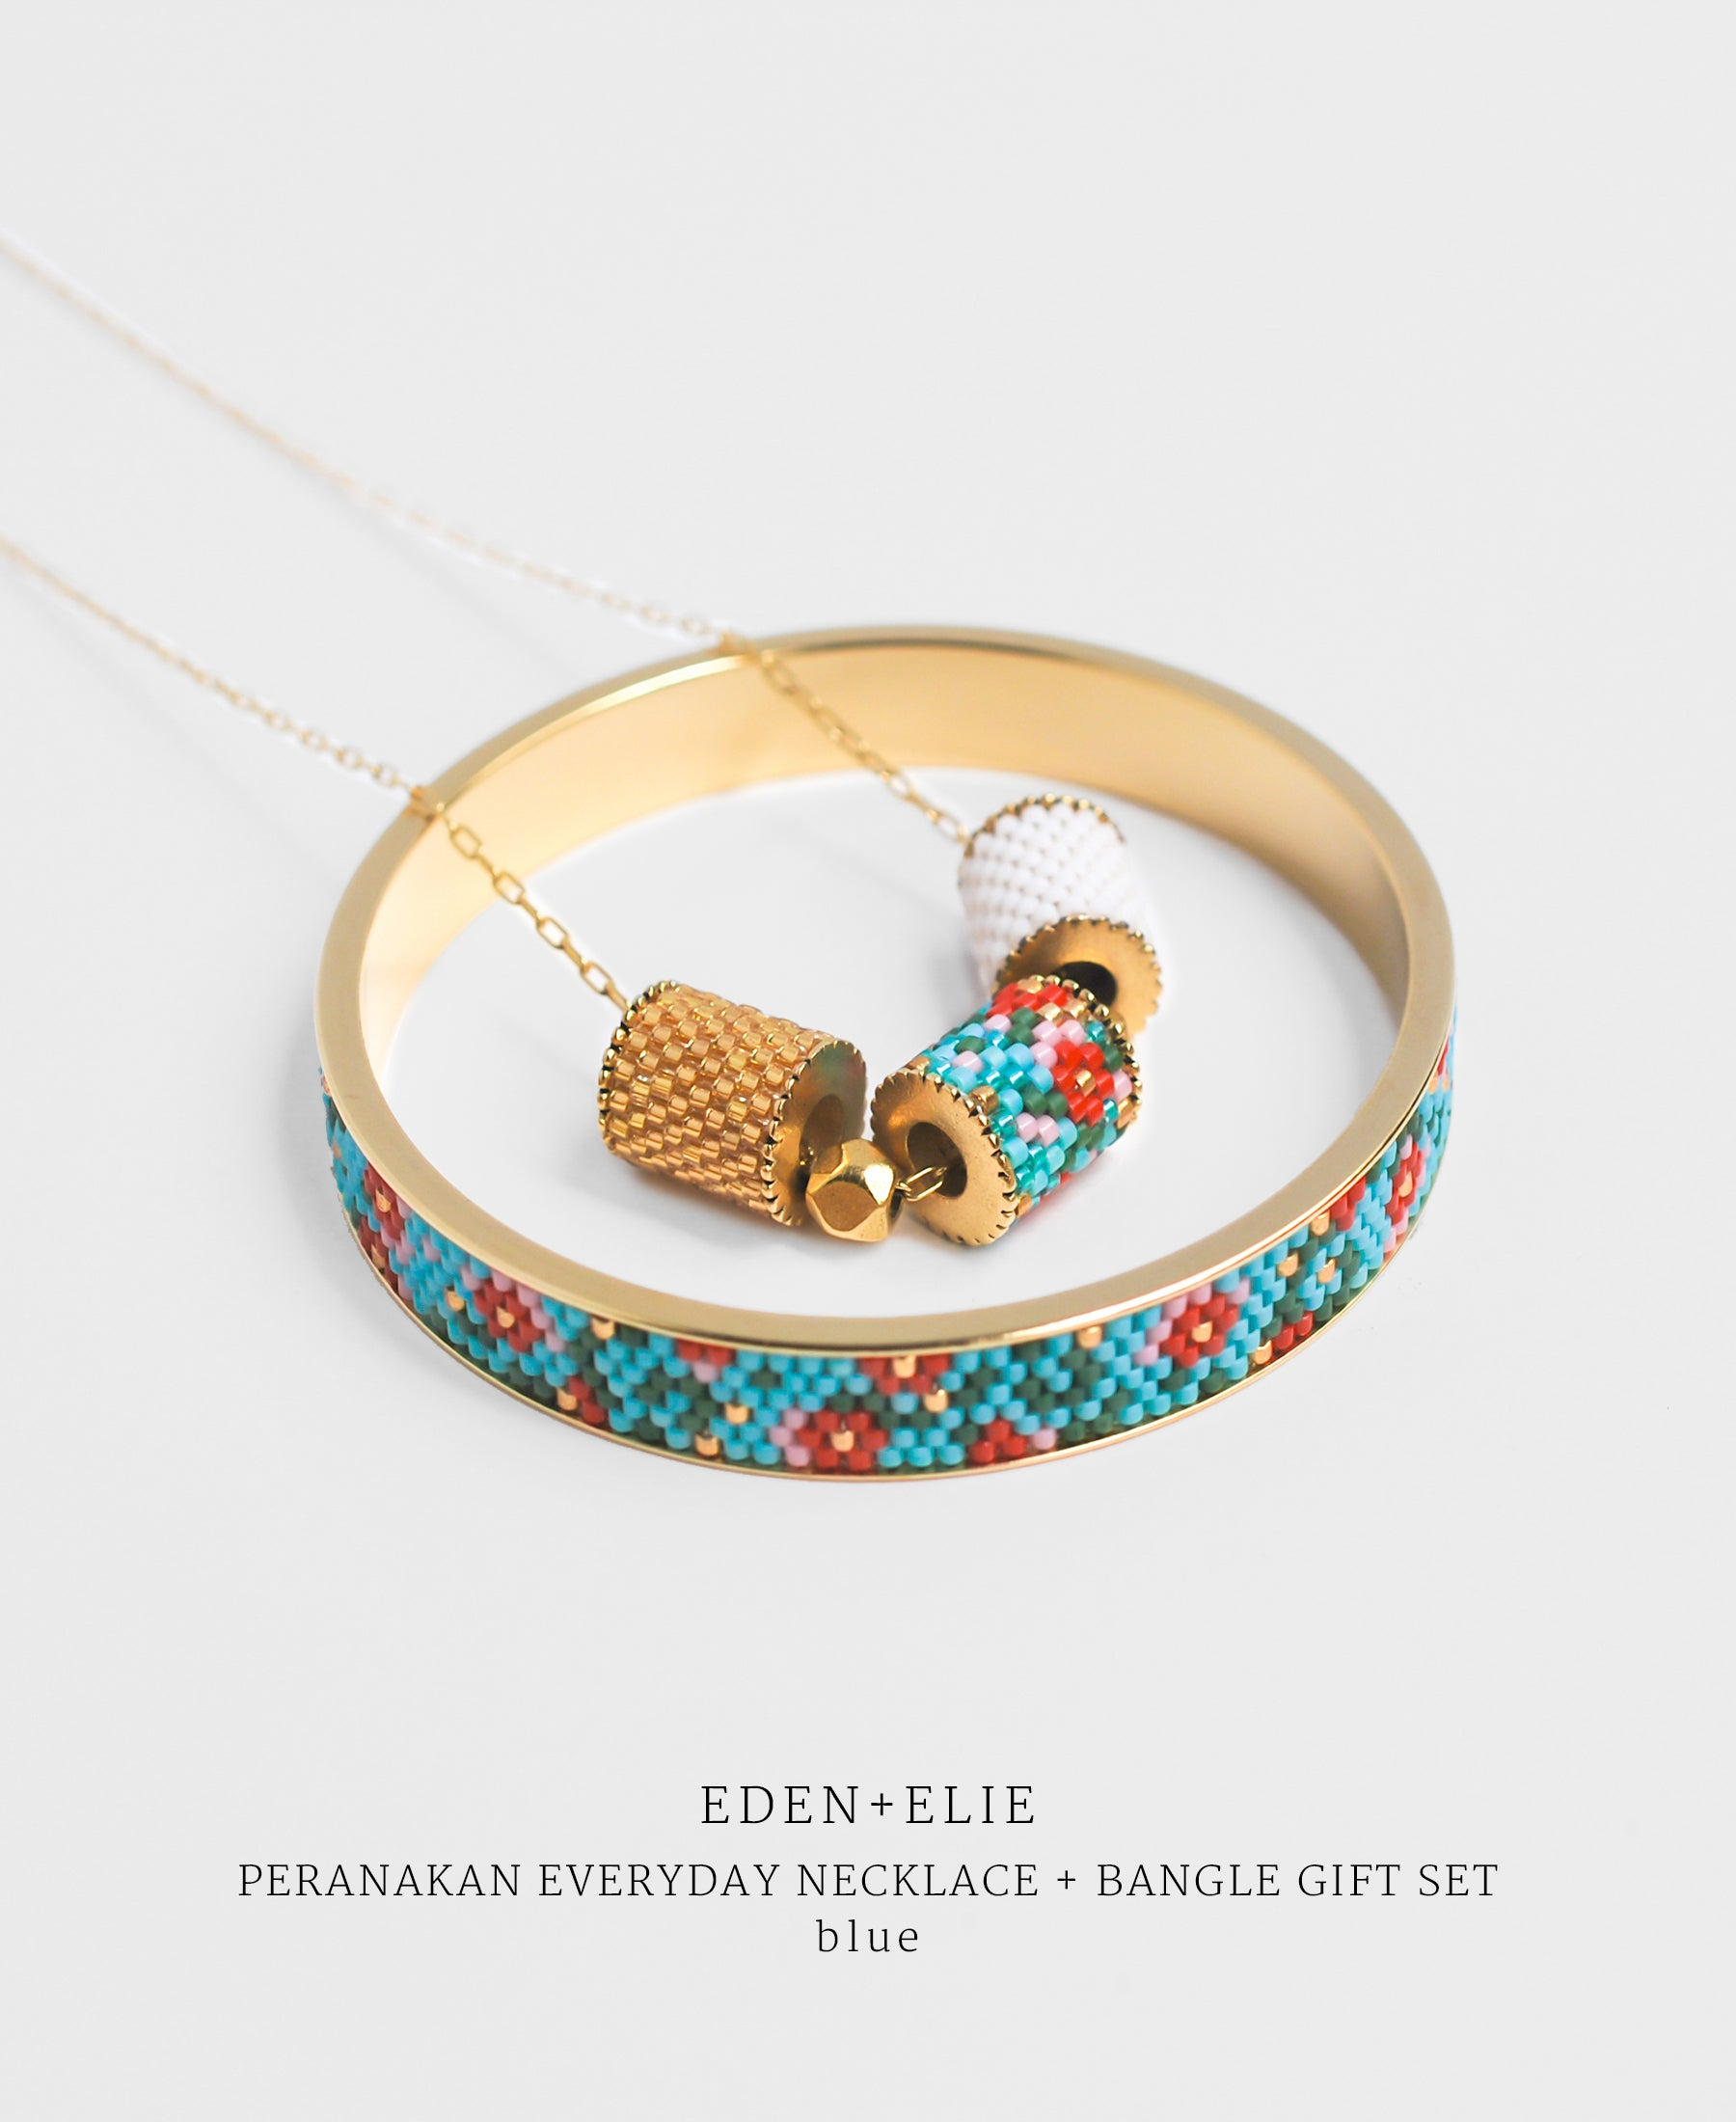 EDEN + ELIE Modern Peranakan adjustable length necklace + bangle gift set - blue